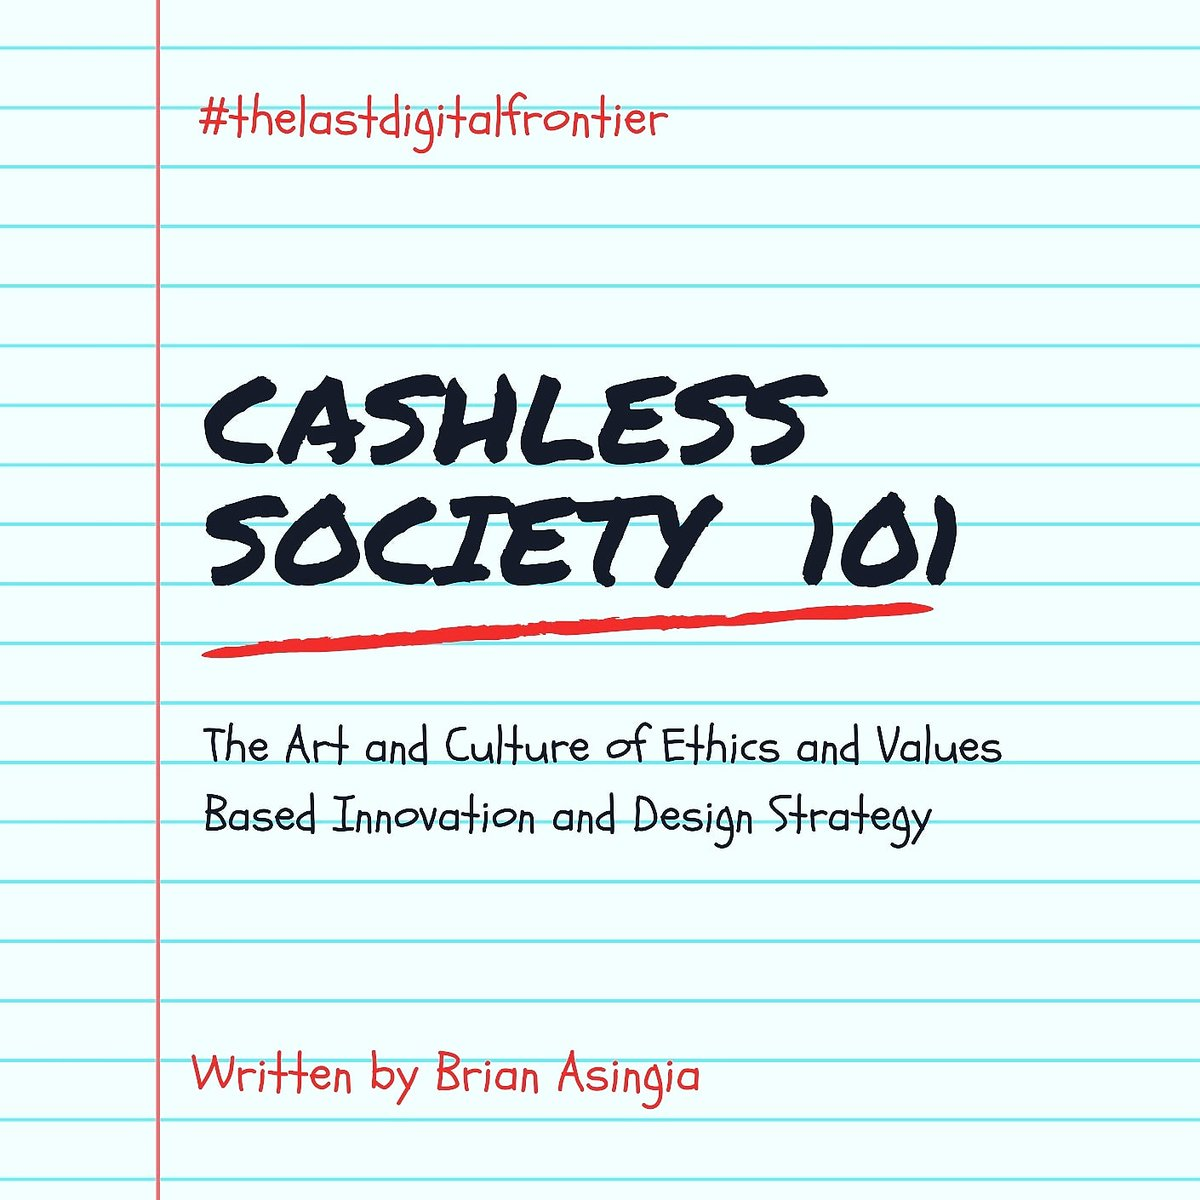 Cashless Society 101: The Art and Culture of Ethics and Values Based Innovations and Design Strategy